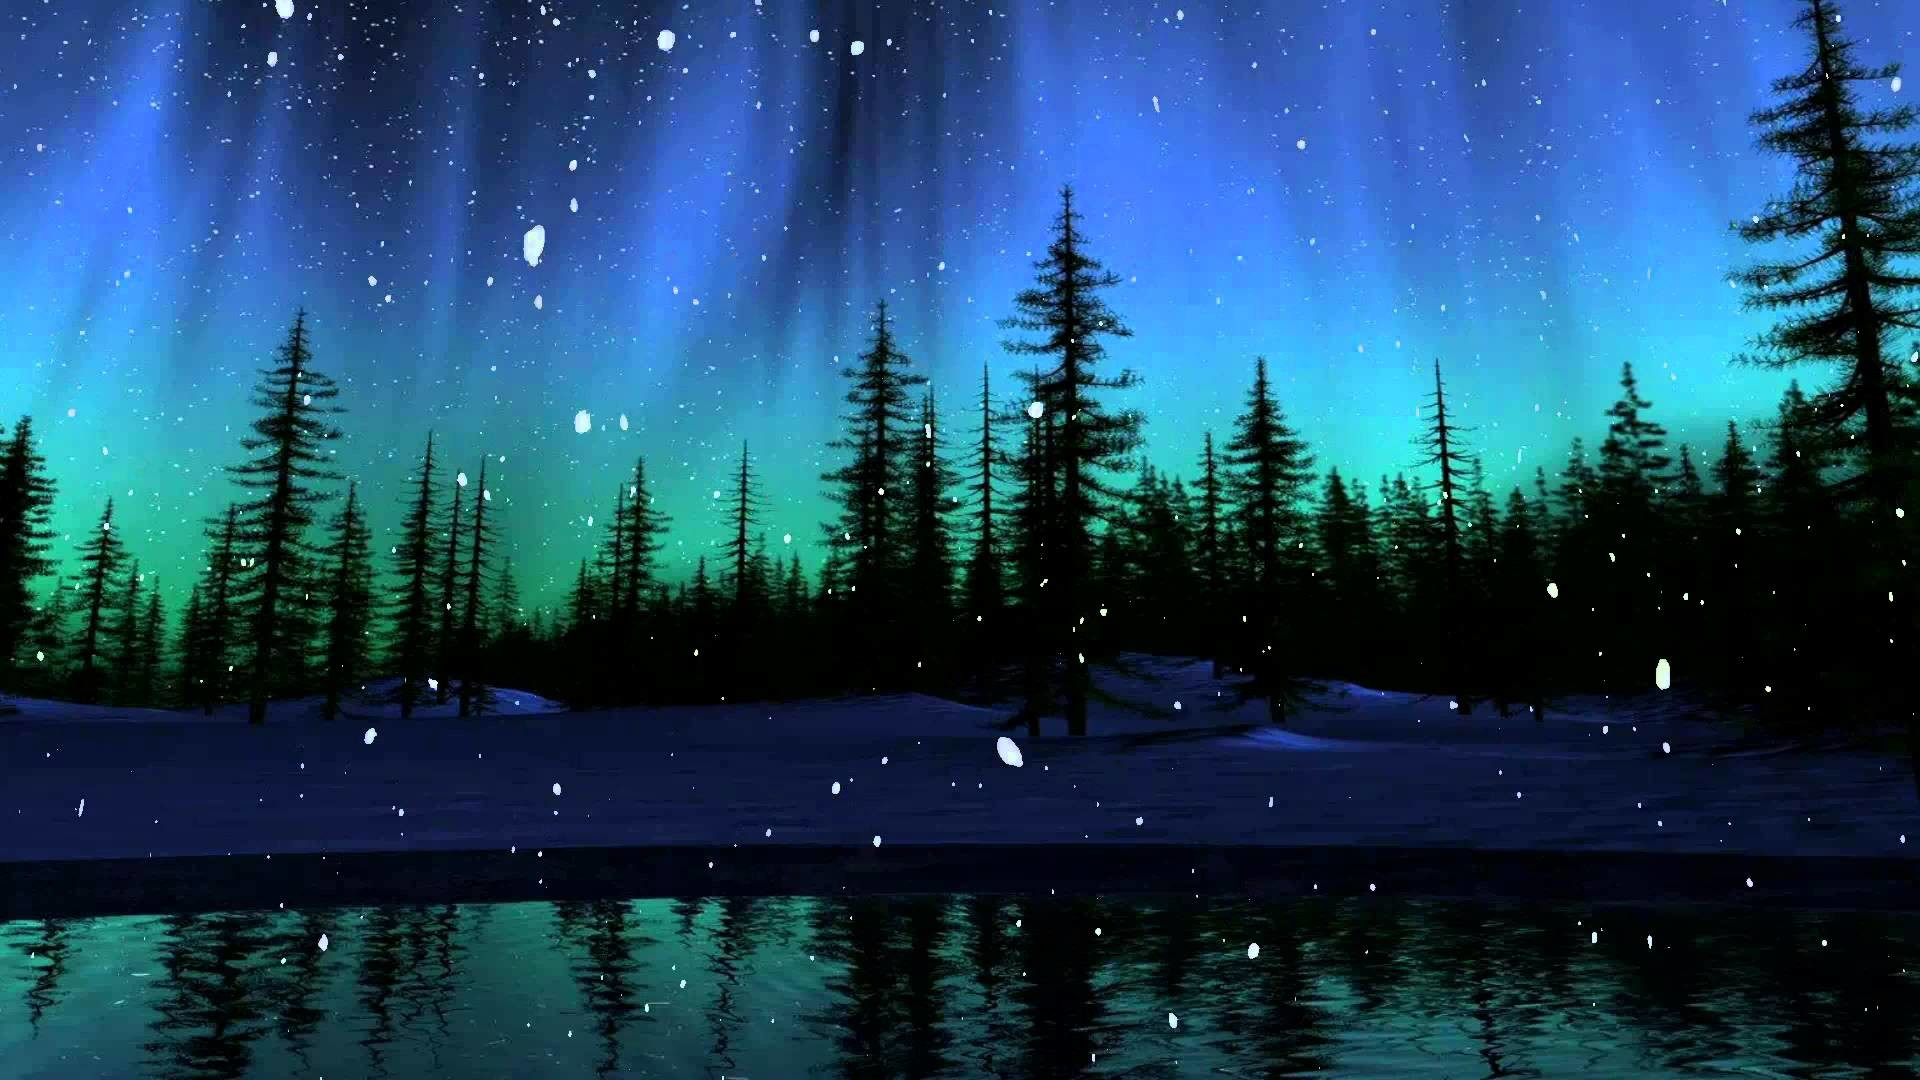 Christmas Snow Falling Wallpaper Falling Snow Animated Wallpaper 57 Images